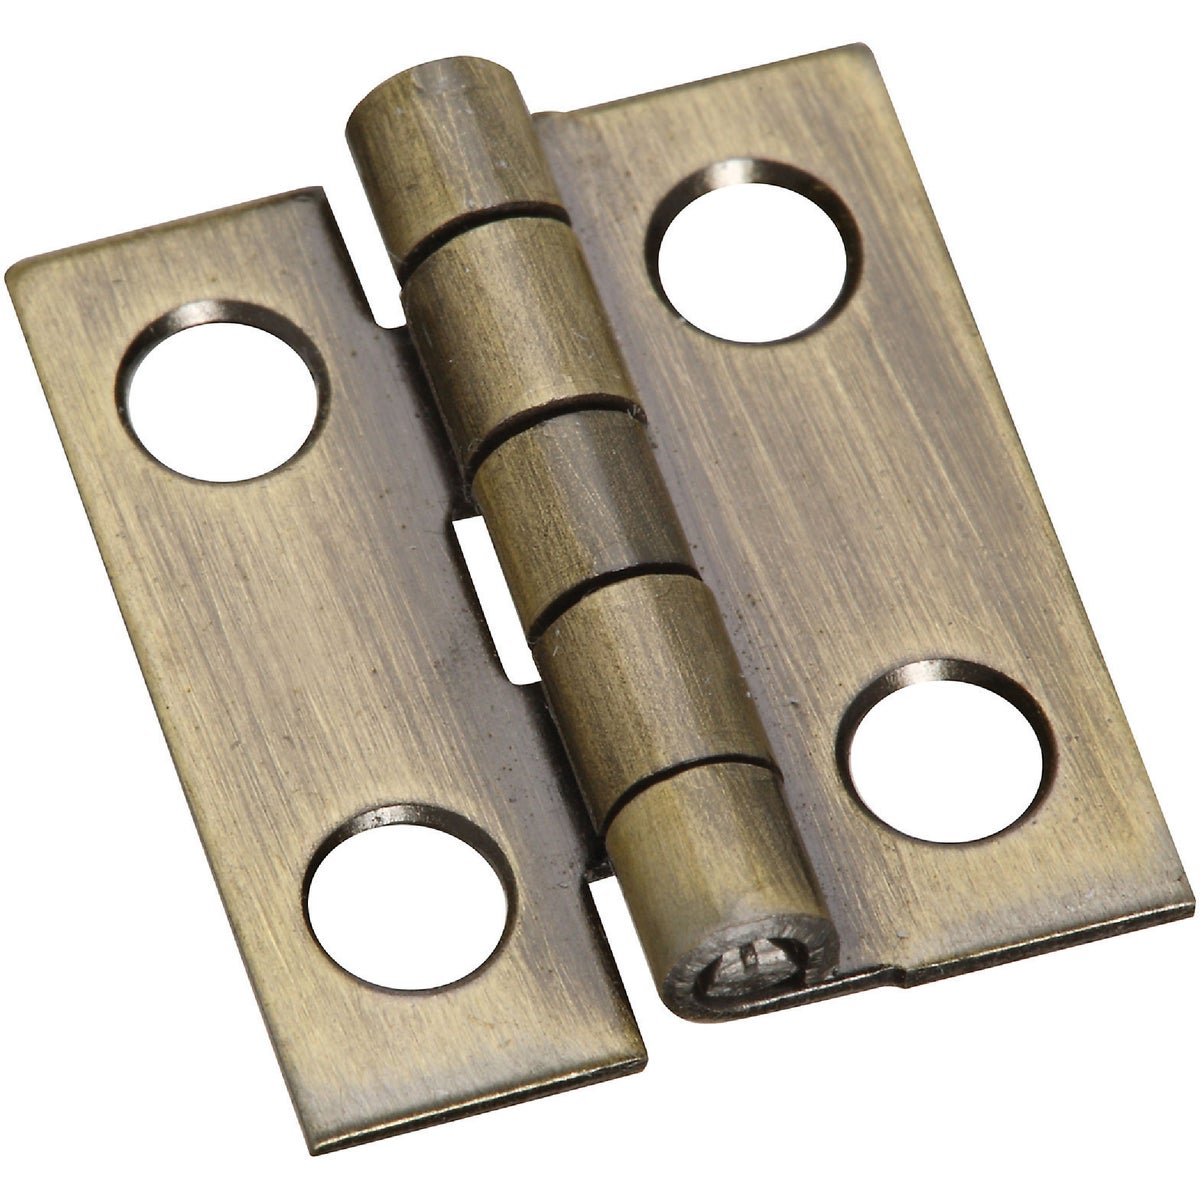 "3/4X5/8"" AB NAR HINGE - N211201 by National Mfg Co"